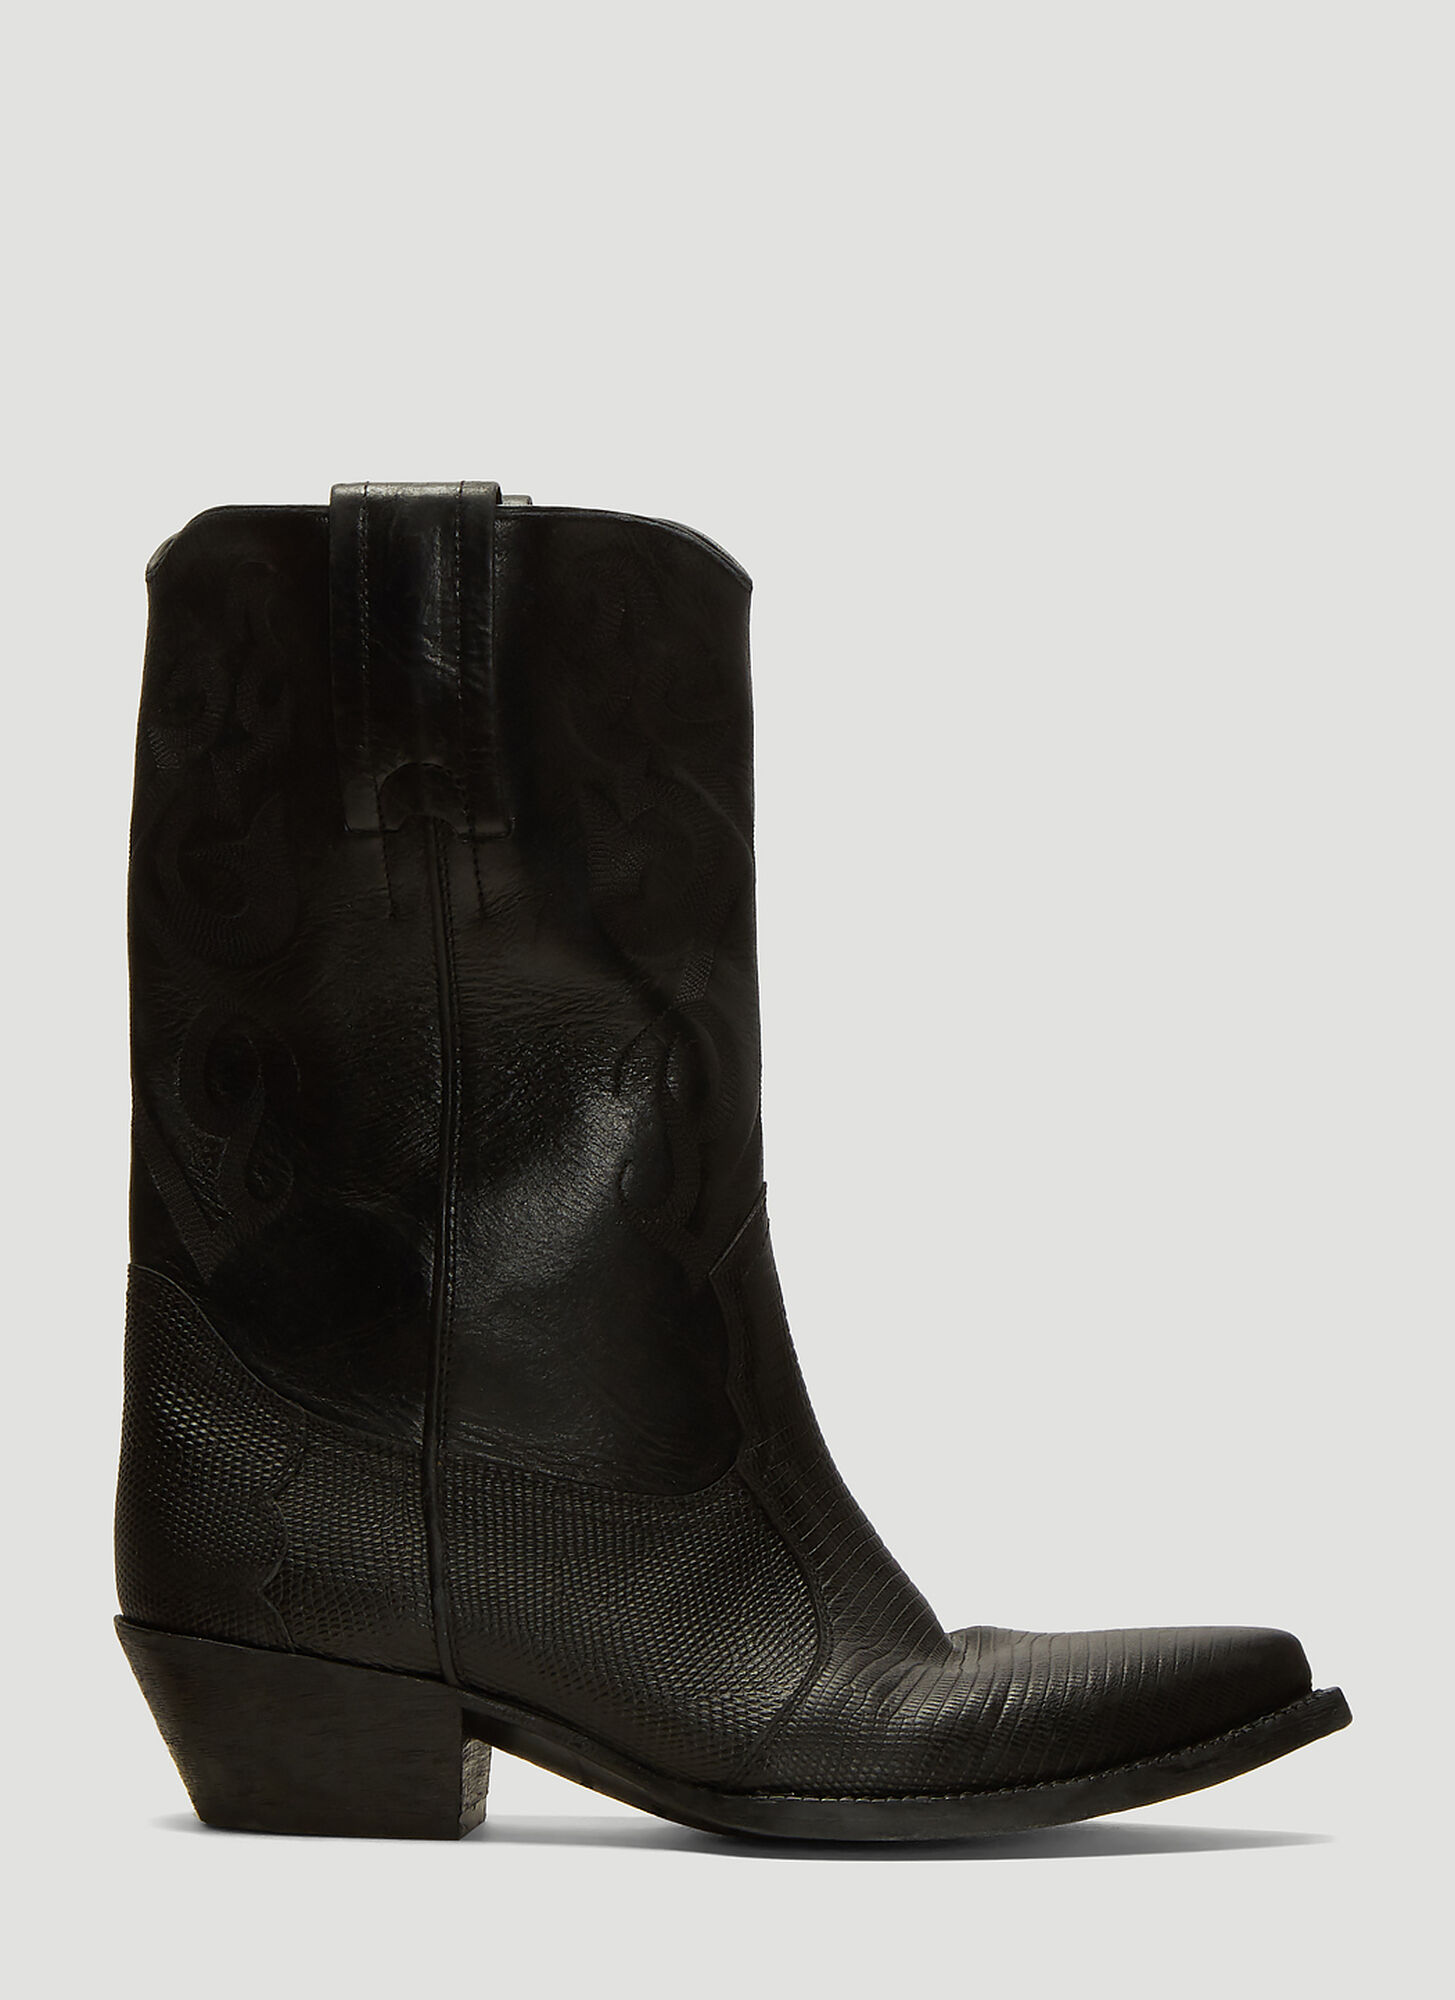 Saint Laurent Cowboy Boots in Black